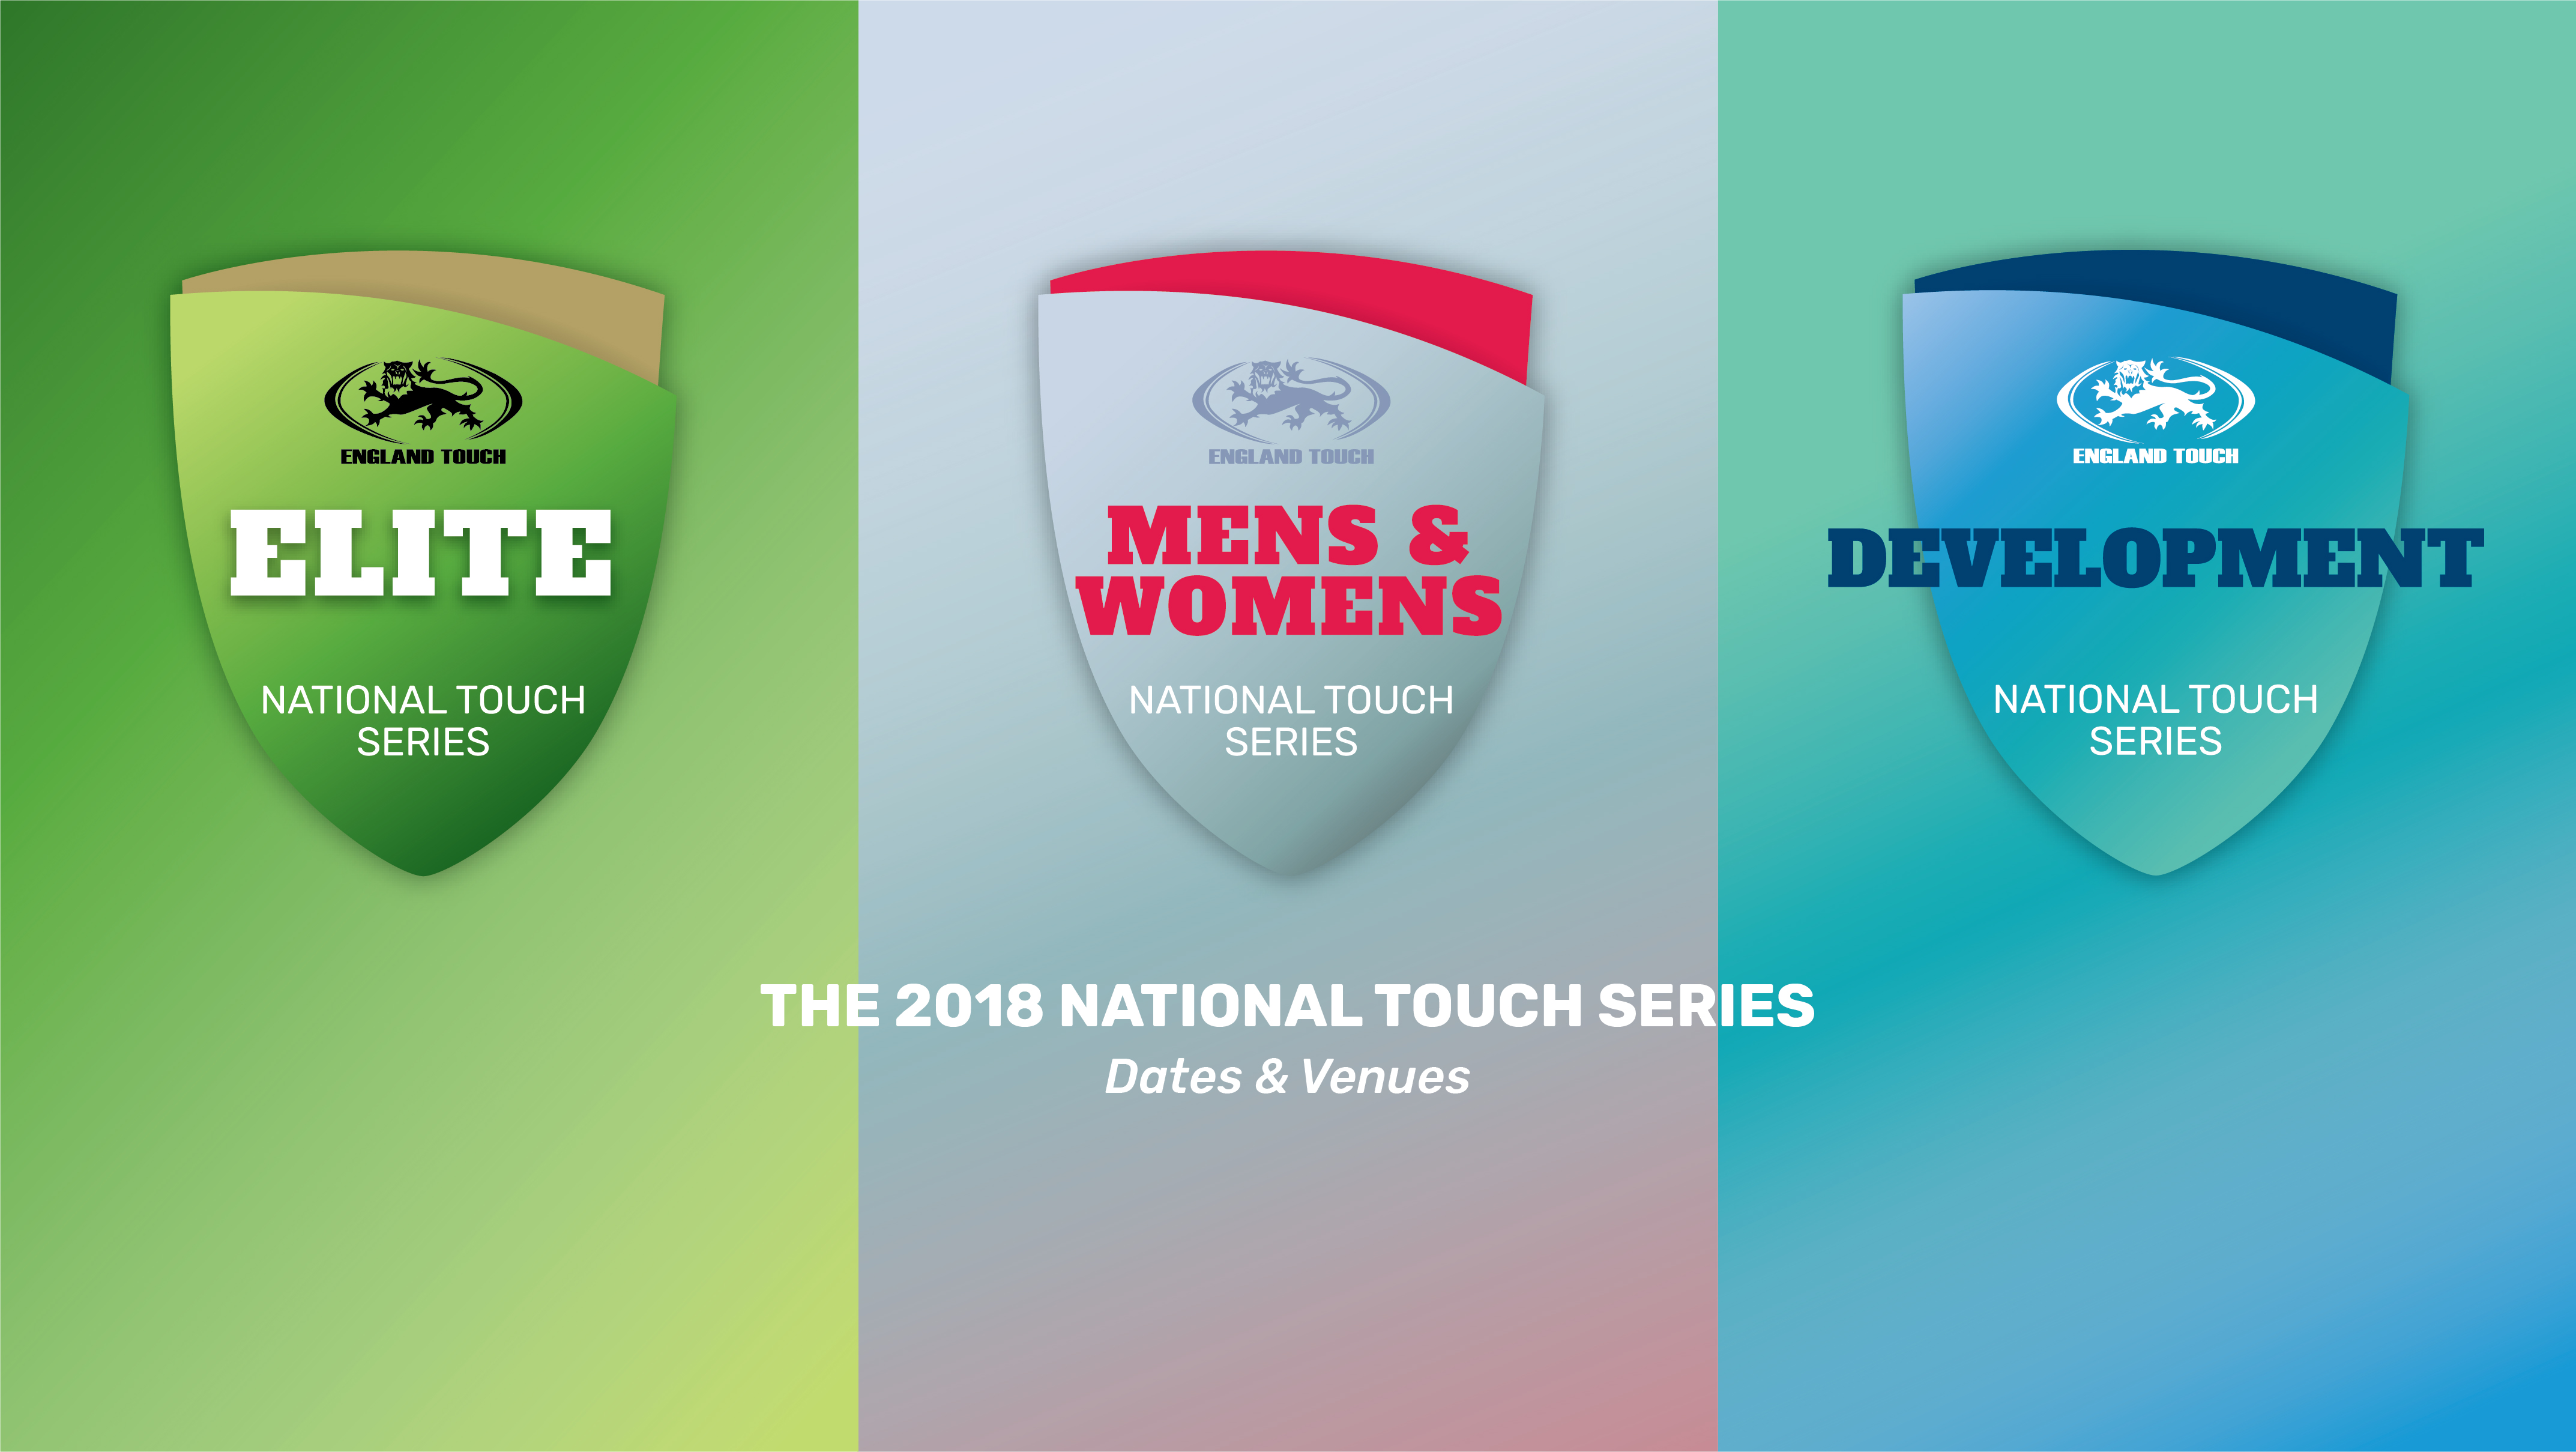 Venues confirmed for 2018 club competitions